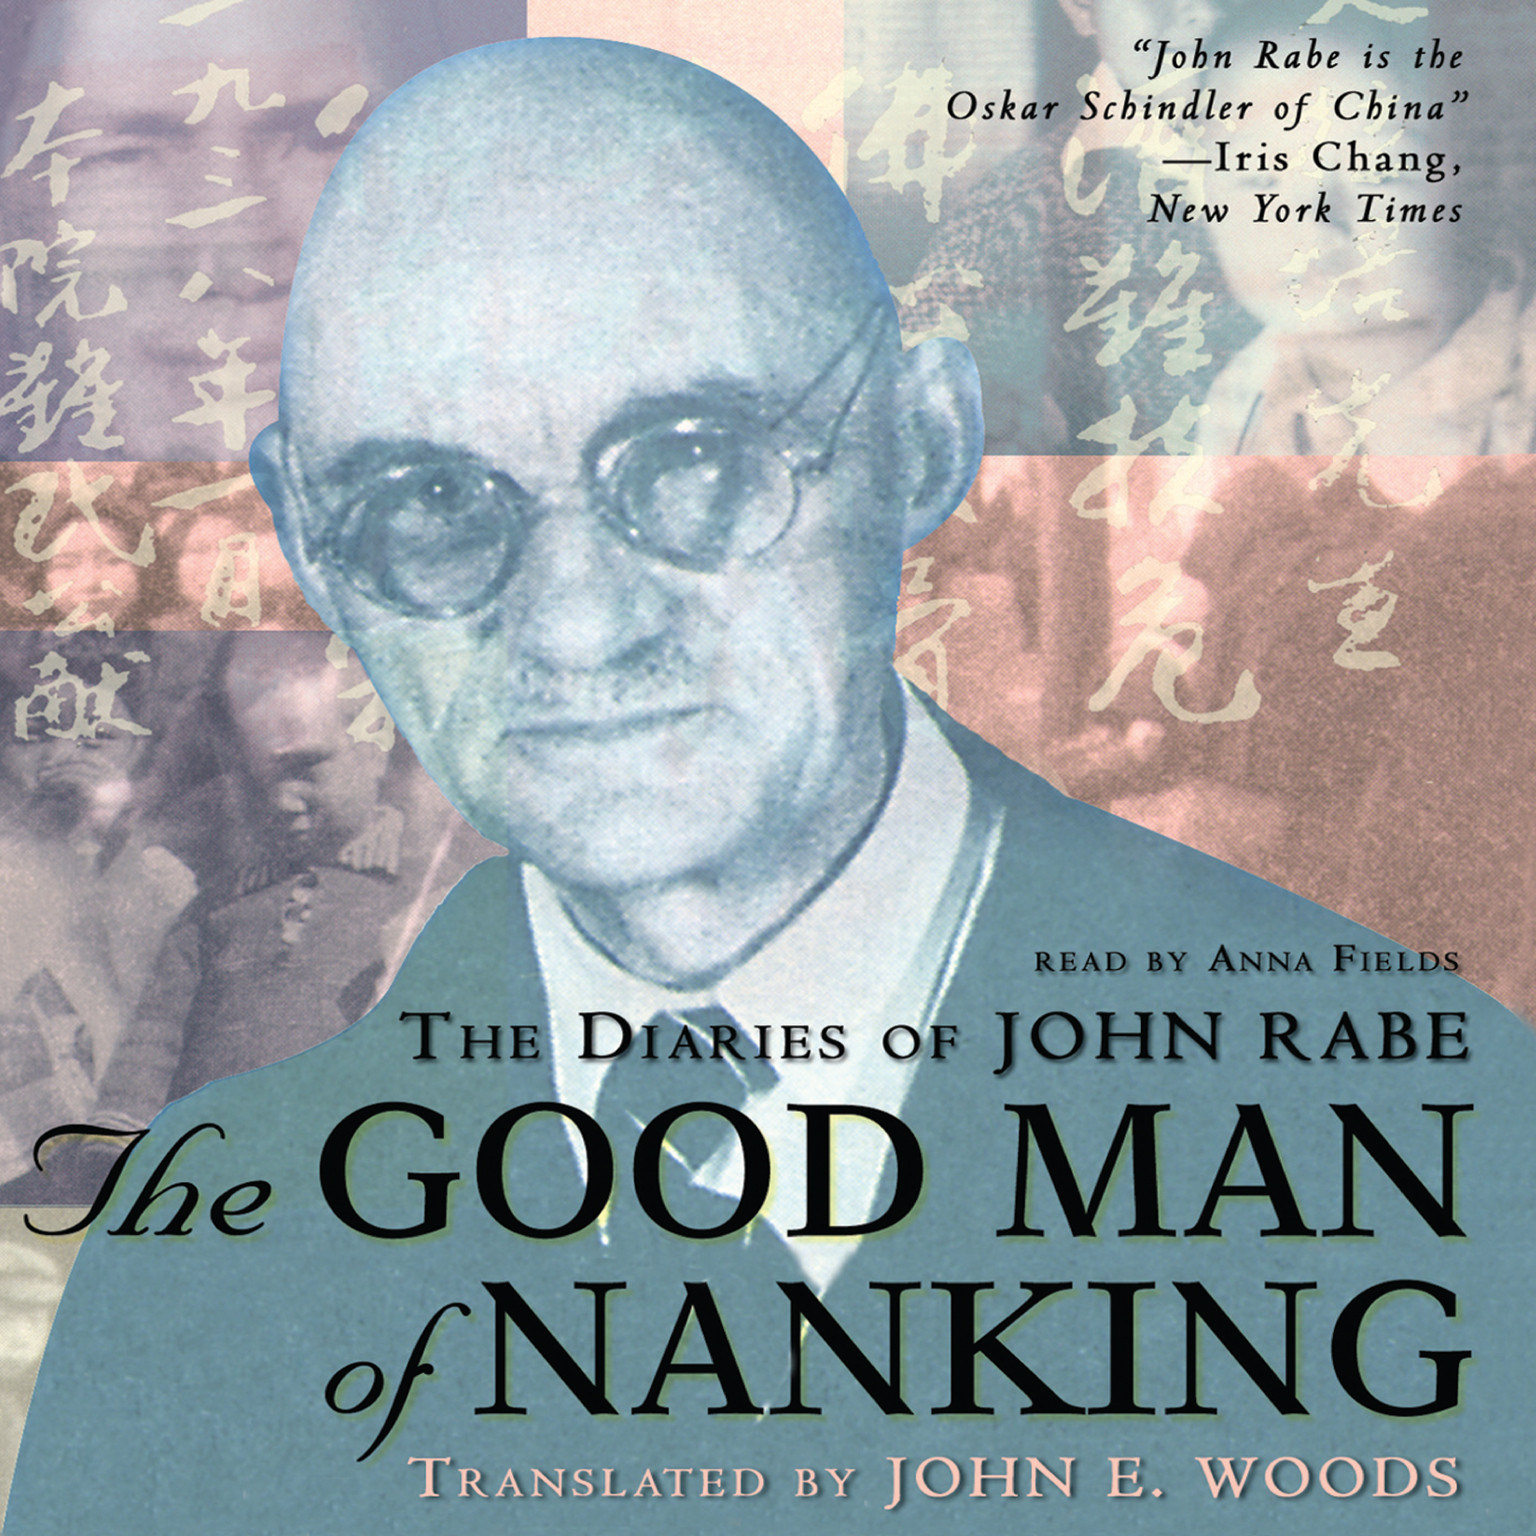 Printable The Good Man of Nanking: The Diaries of John Rabe Audiobook Cover Art